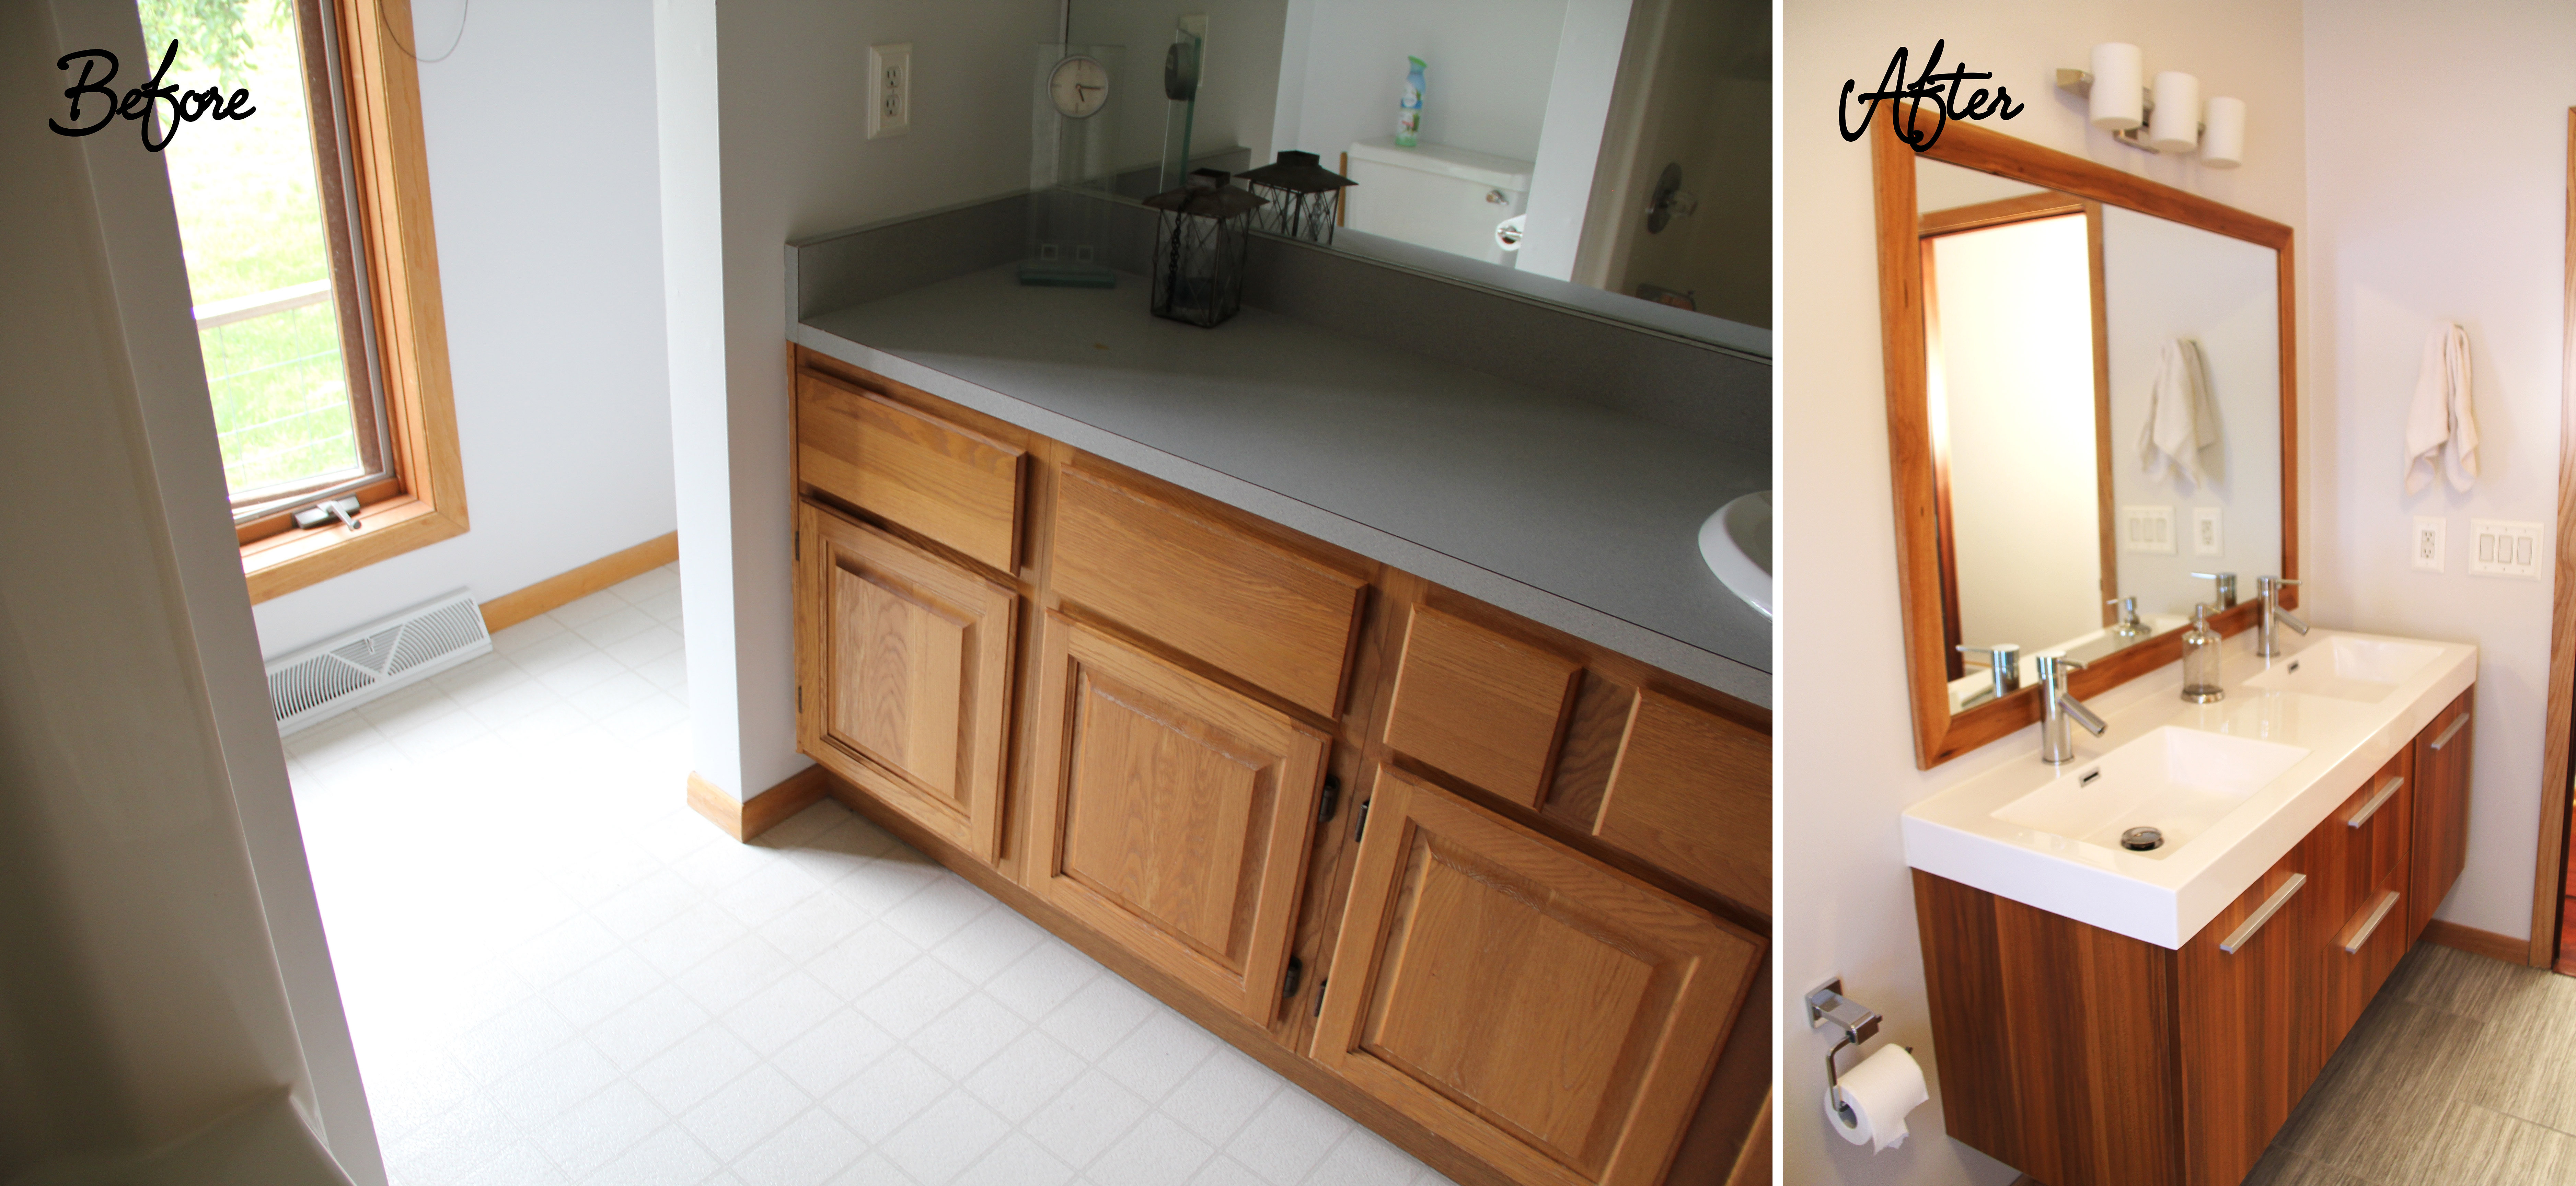 How Much Does Kitchen Remodel Add To Value Of Home